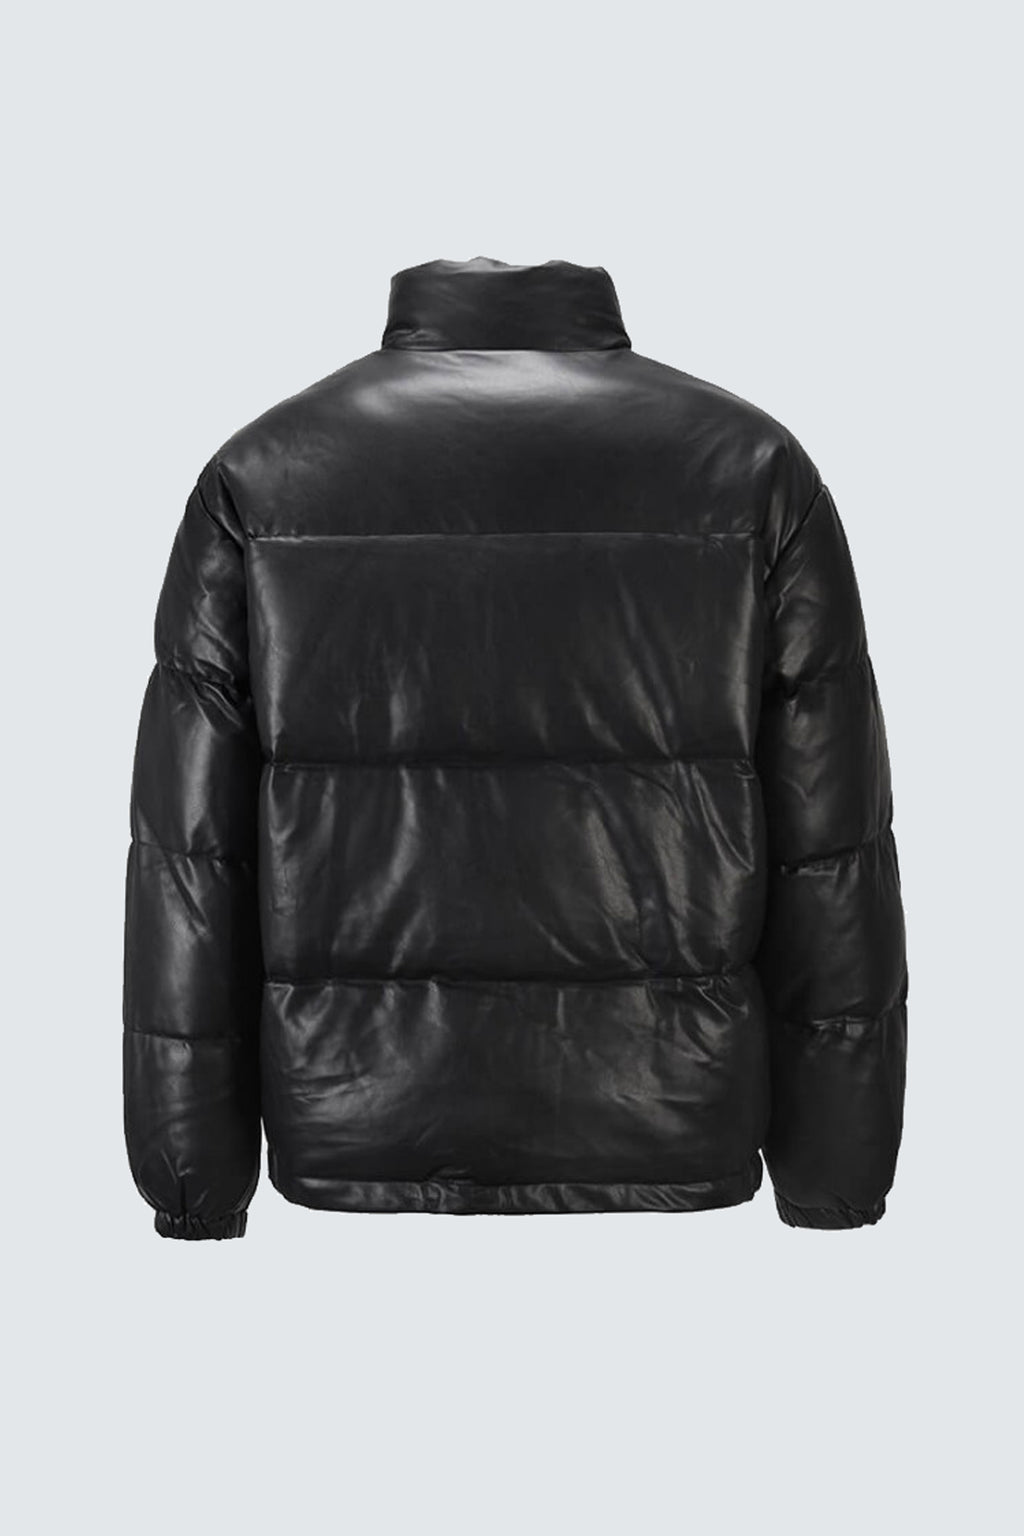 Padded Faux Leather Puffer Jacket - Black - SVPPLY. STUDIOS